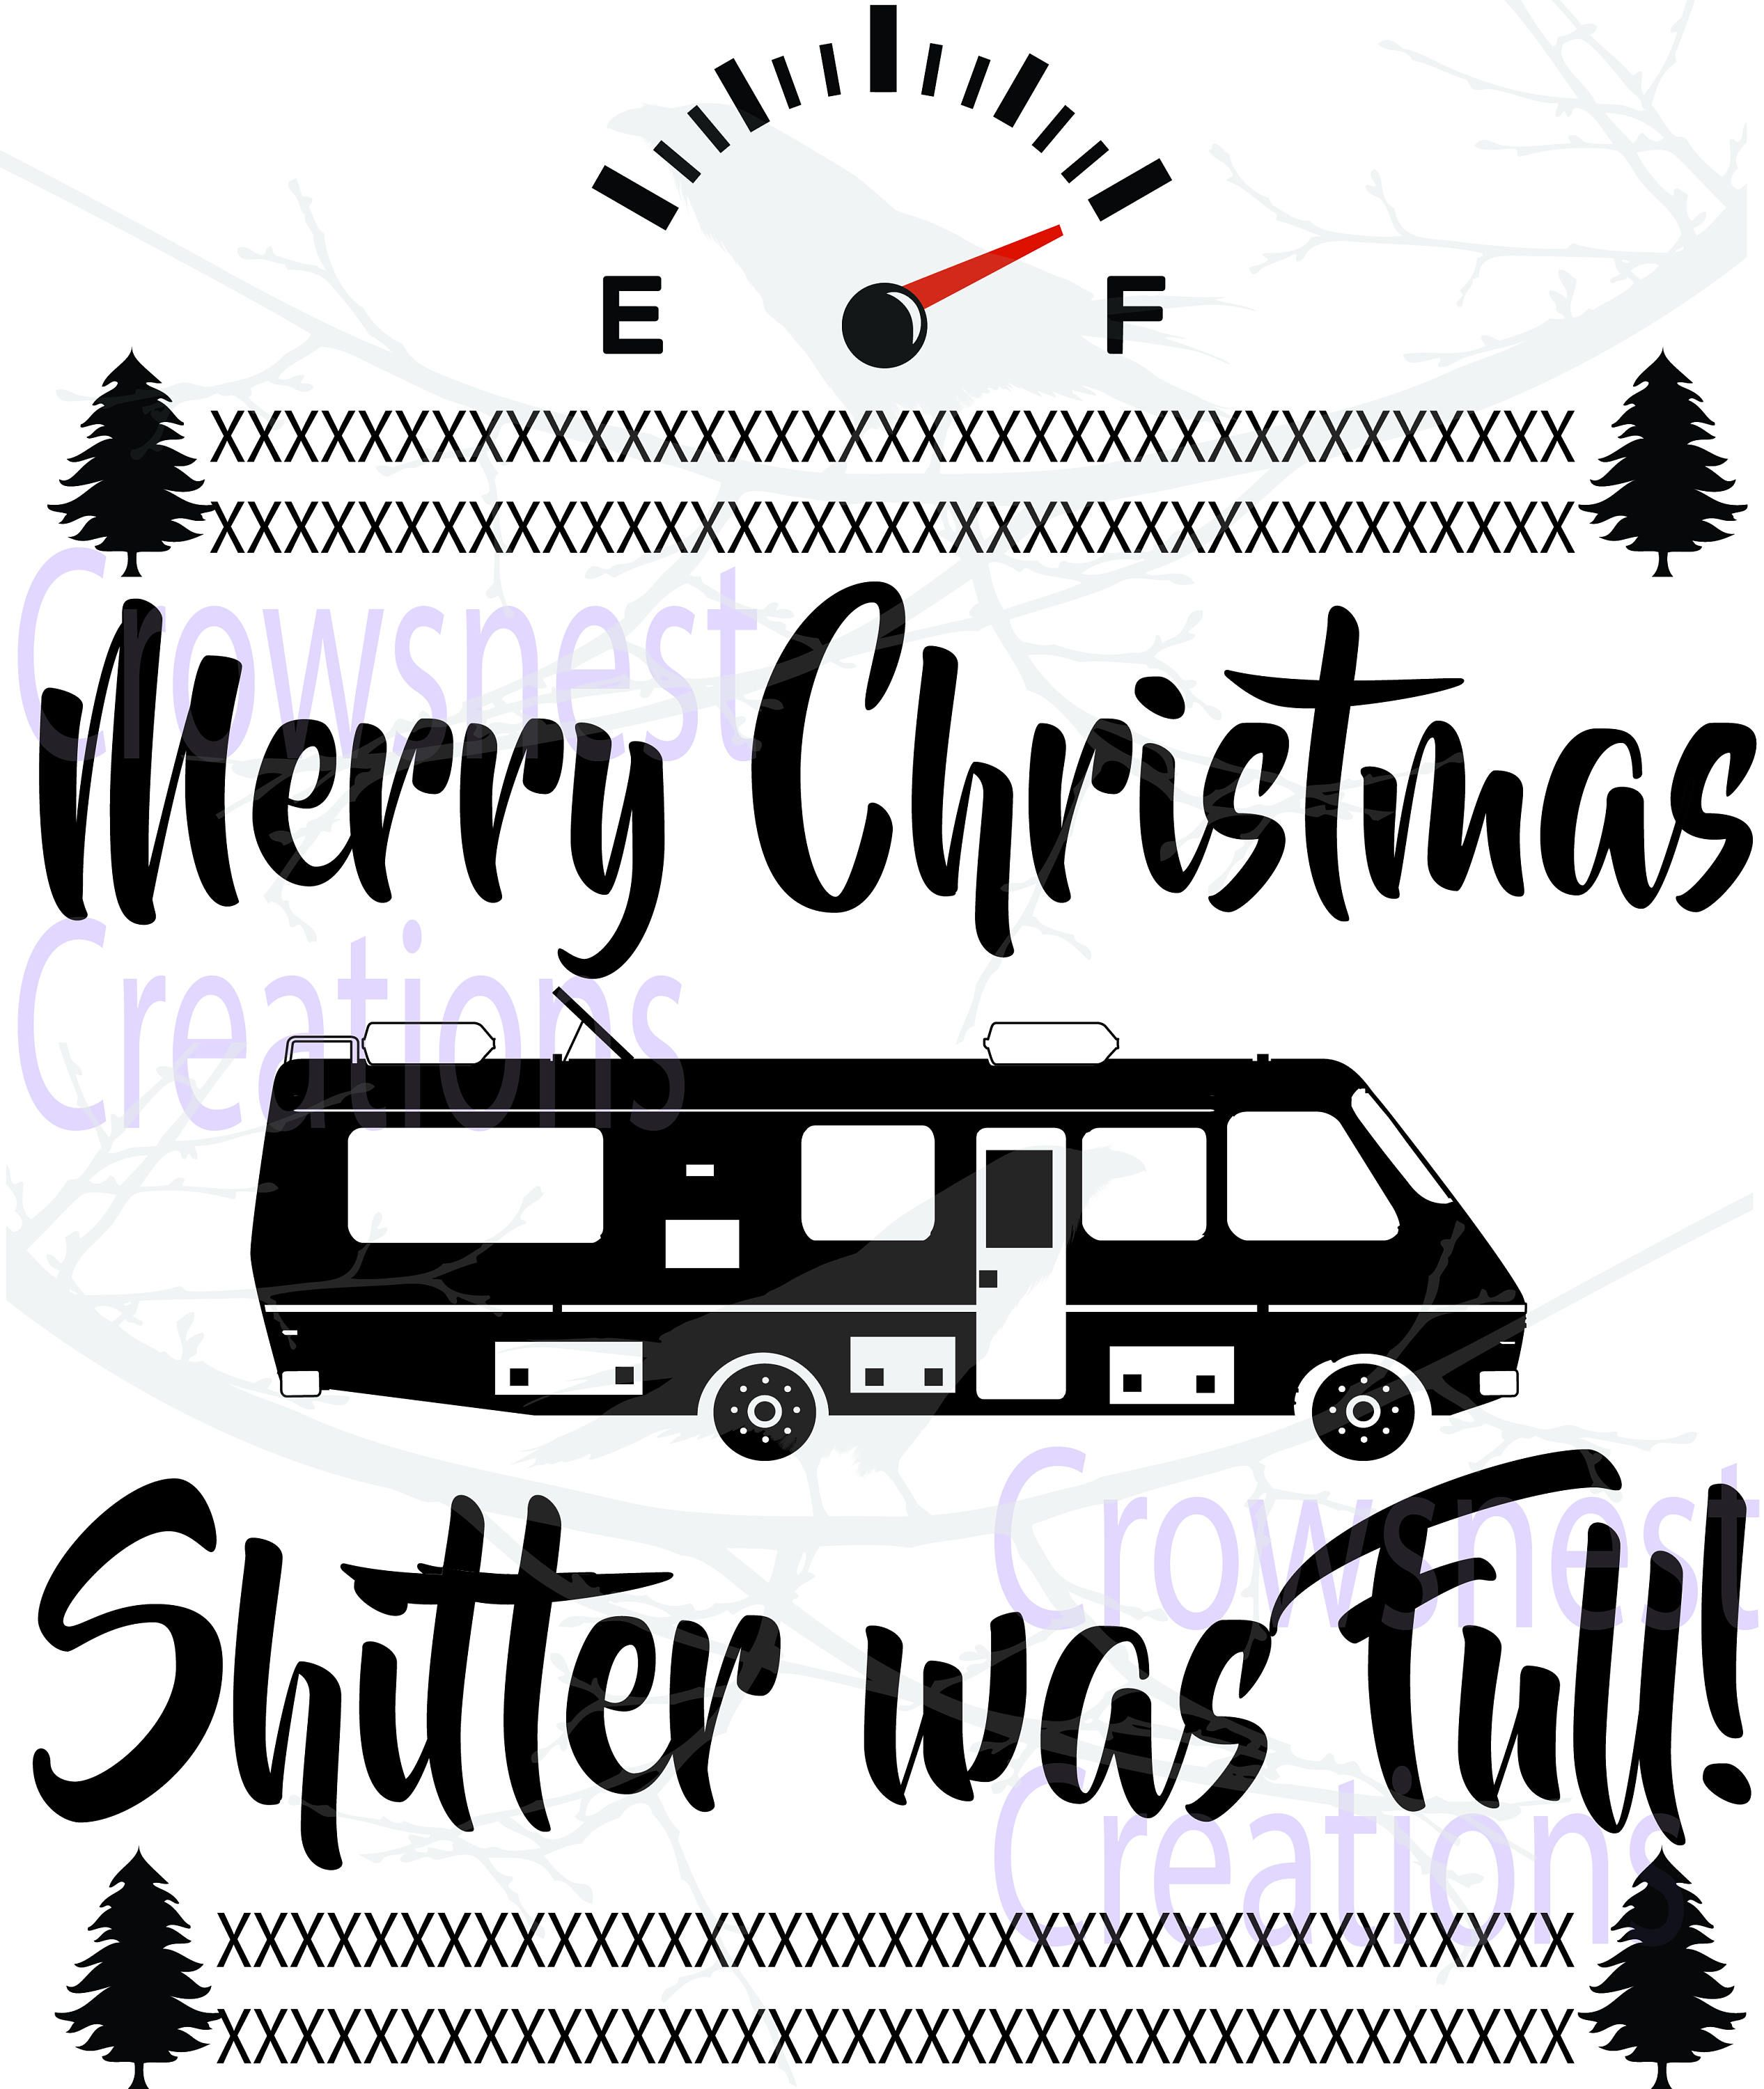 Merry Christmas Shitters full, Griswold Christmas, christmas.